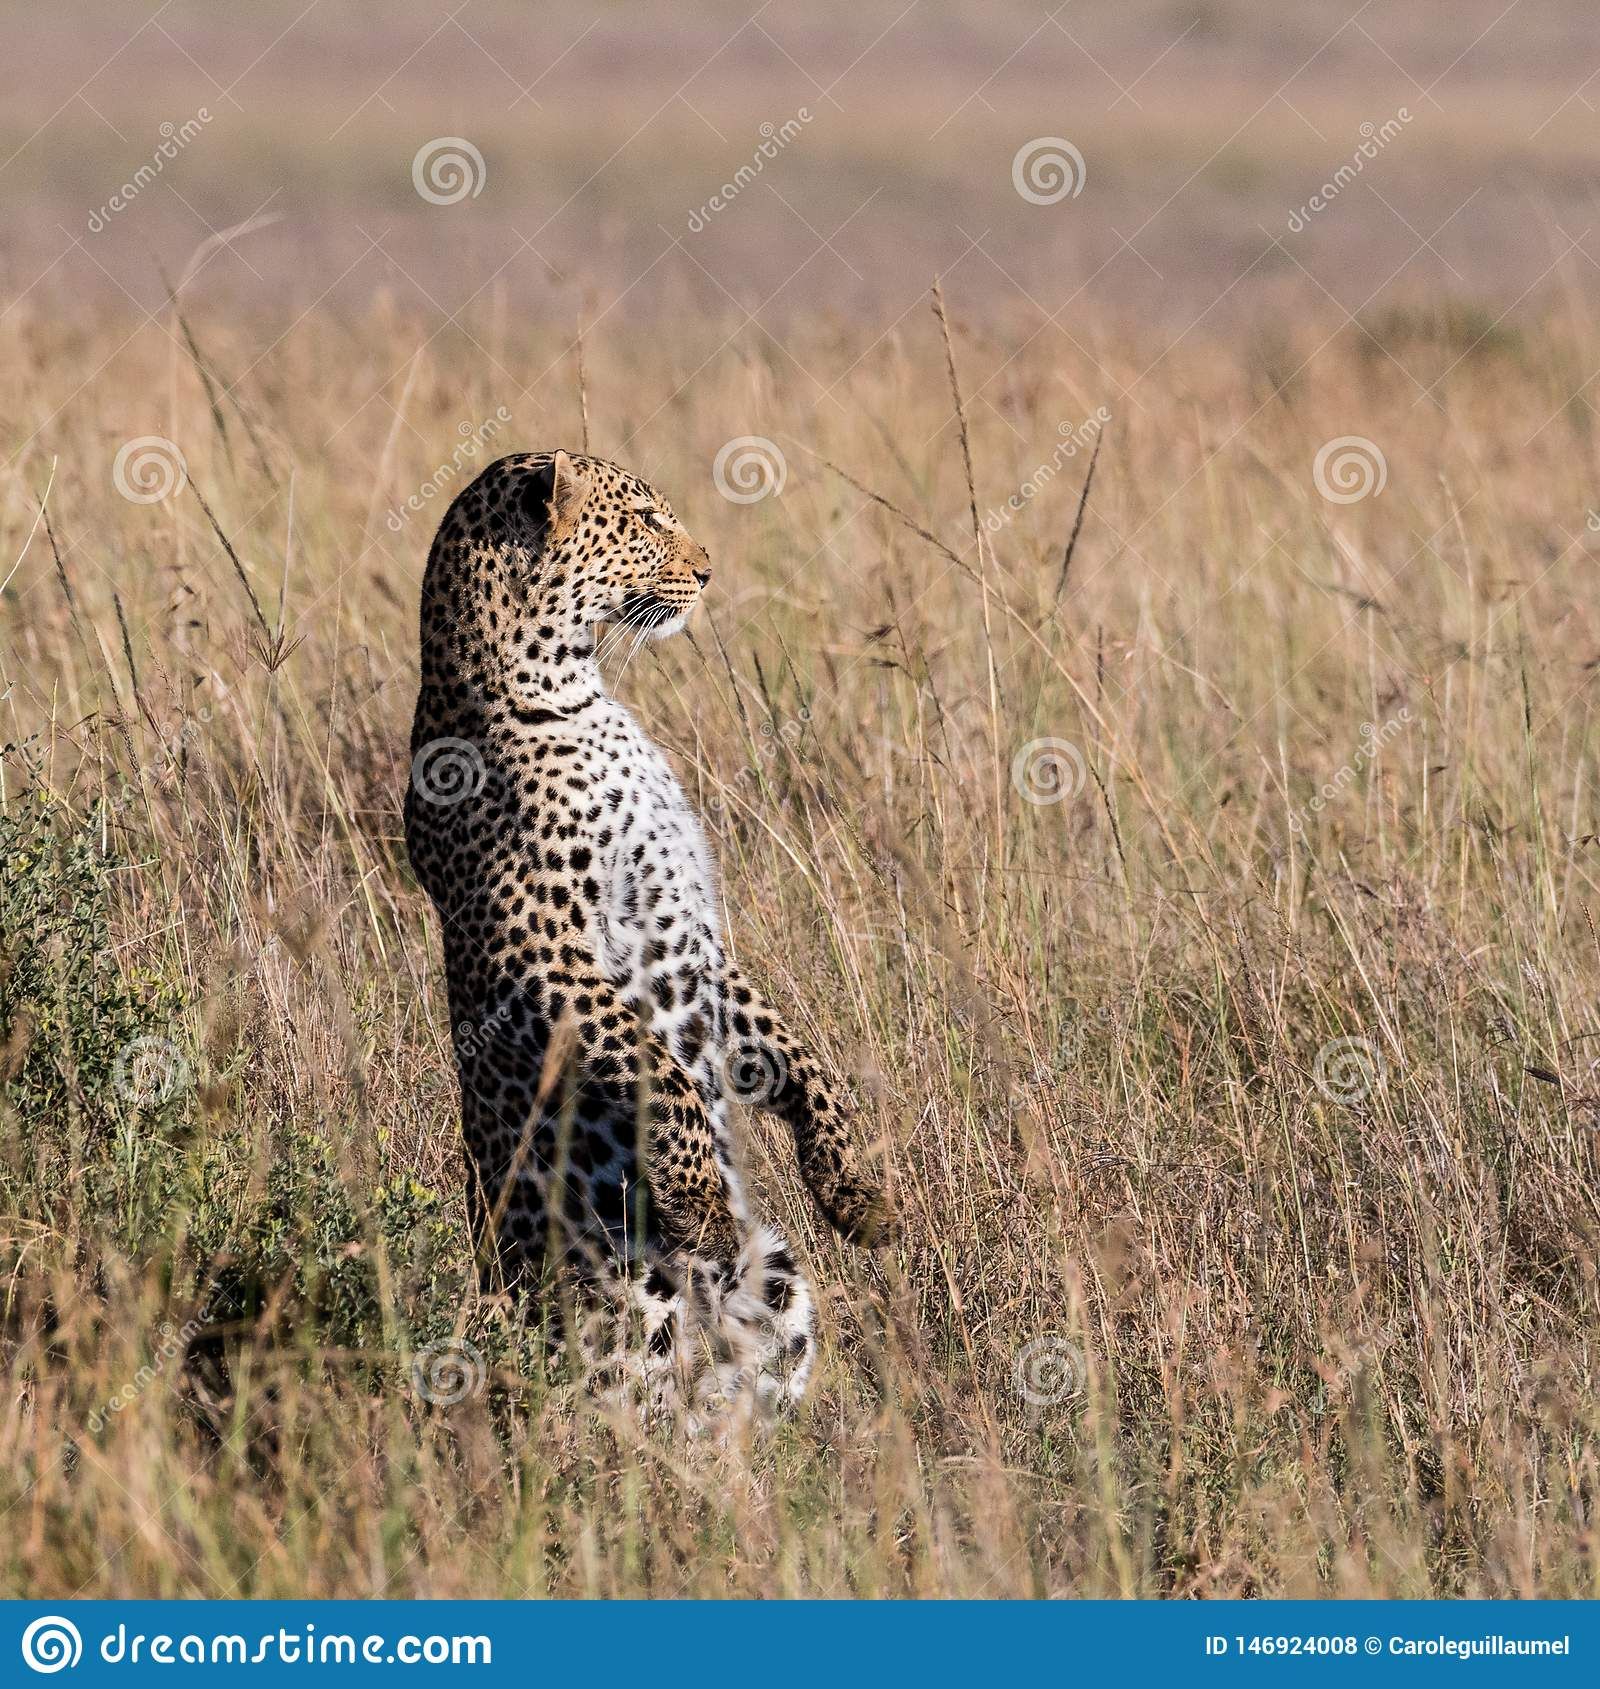 Leopard standing on its hind legs to scan the horizon